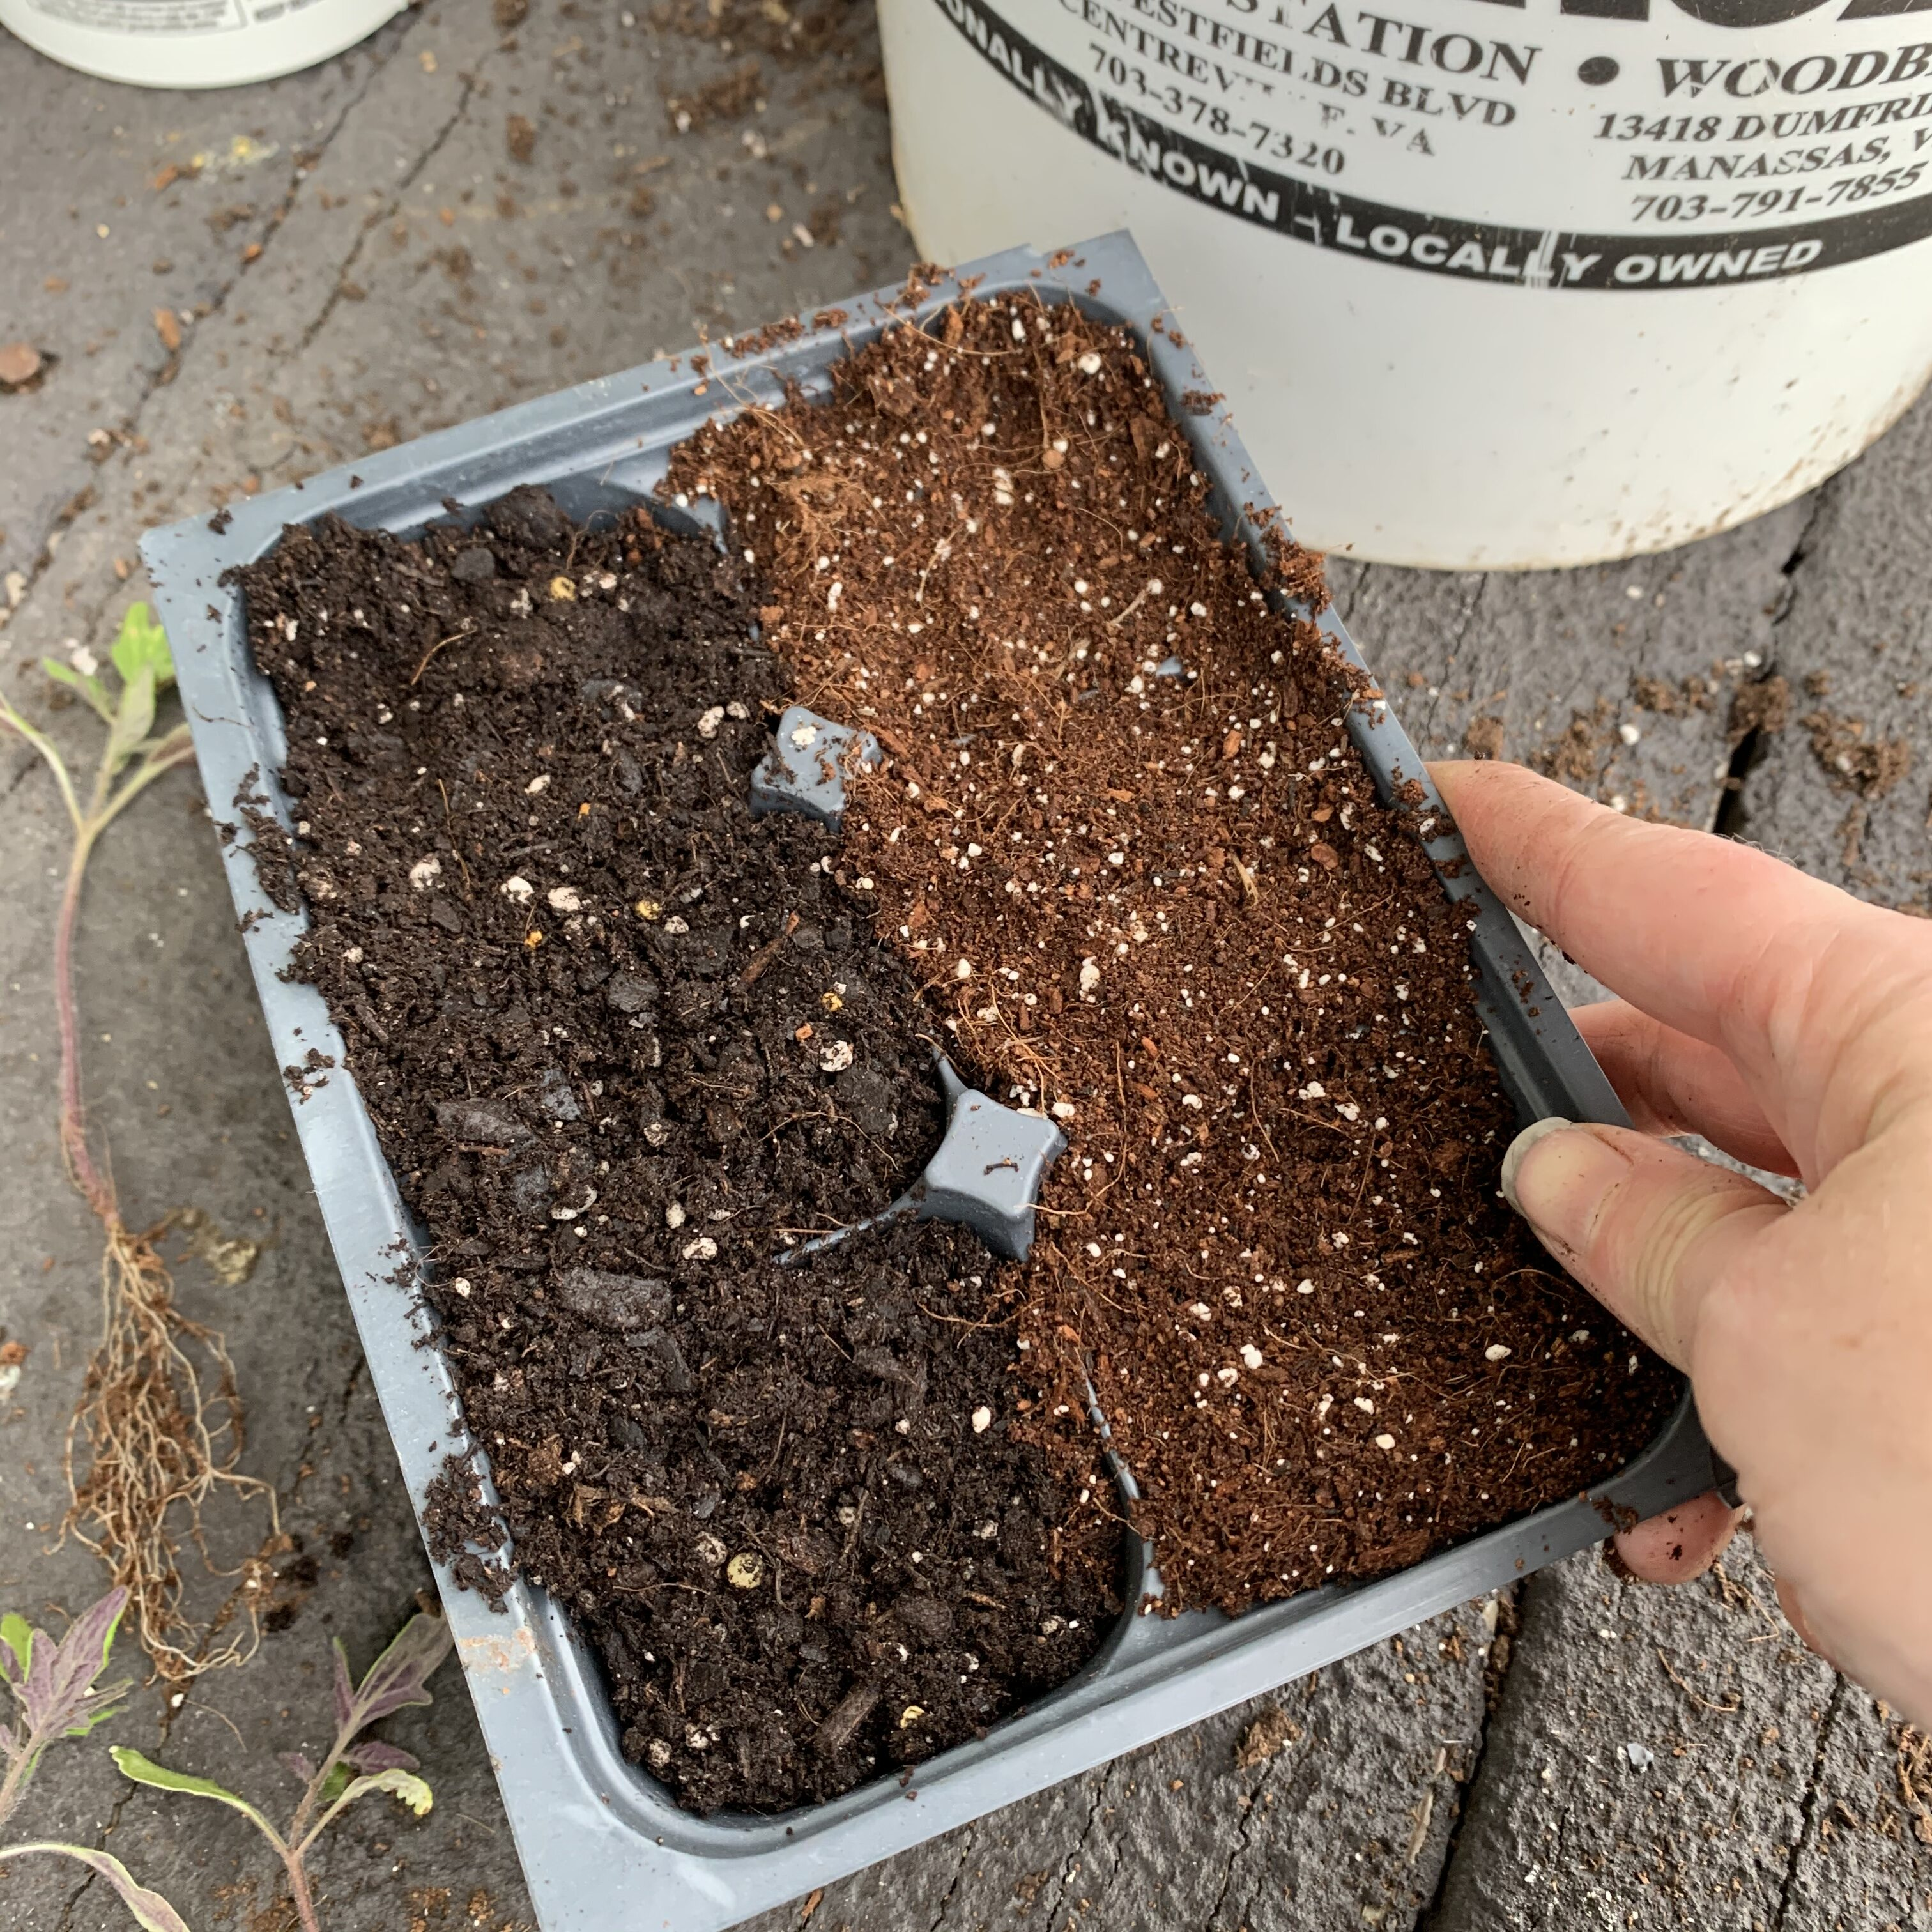 275508C4 A418 4D93 8B7D FB6BD63F6AF3 Comparing Burpee Organic Seed Starting Mix vs Miracle Gro Moisture Control Potting Mix for transplanted tomato seedlings - Results